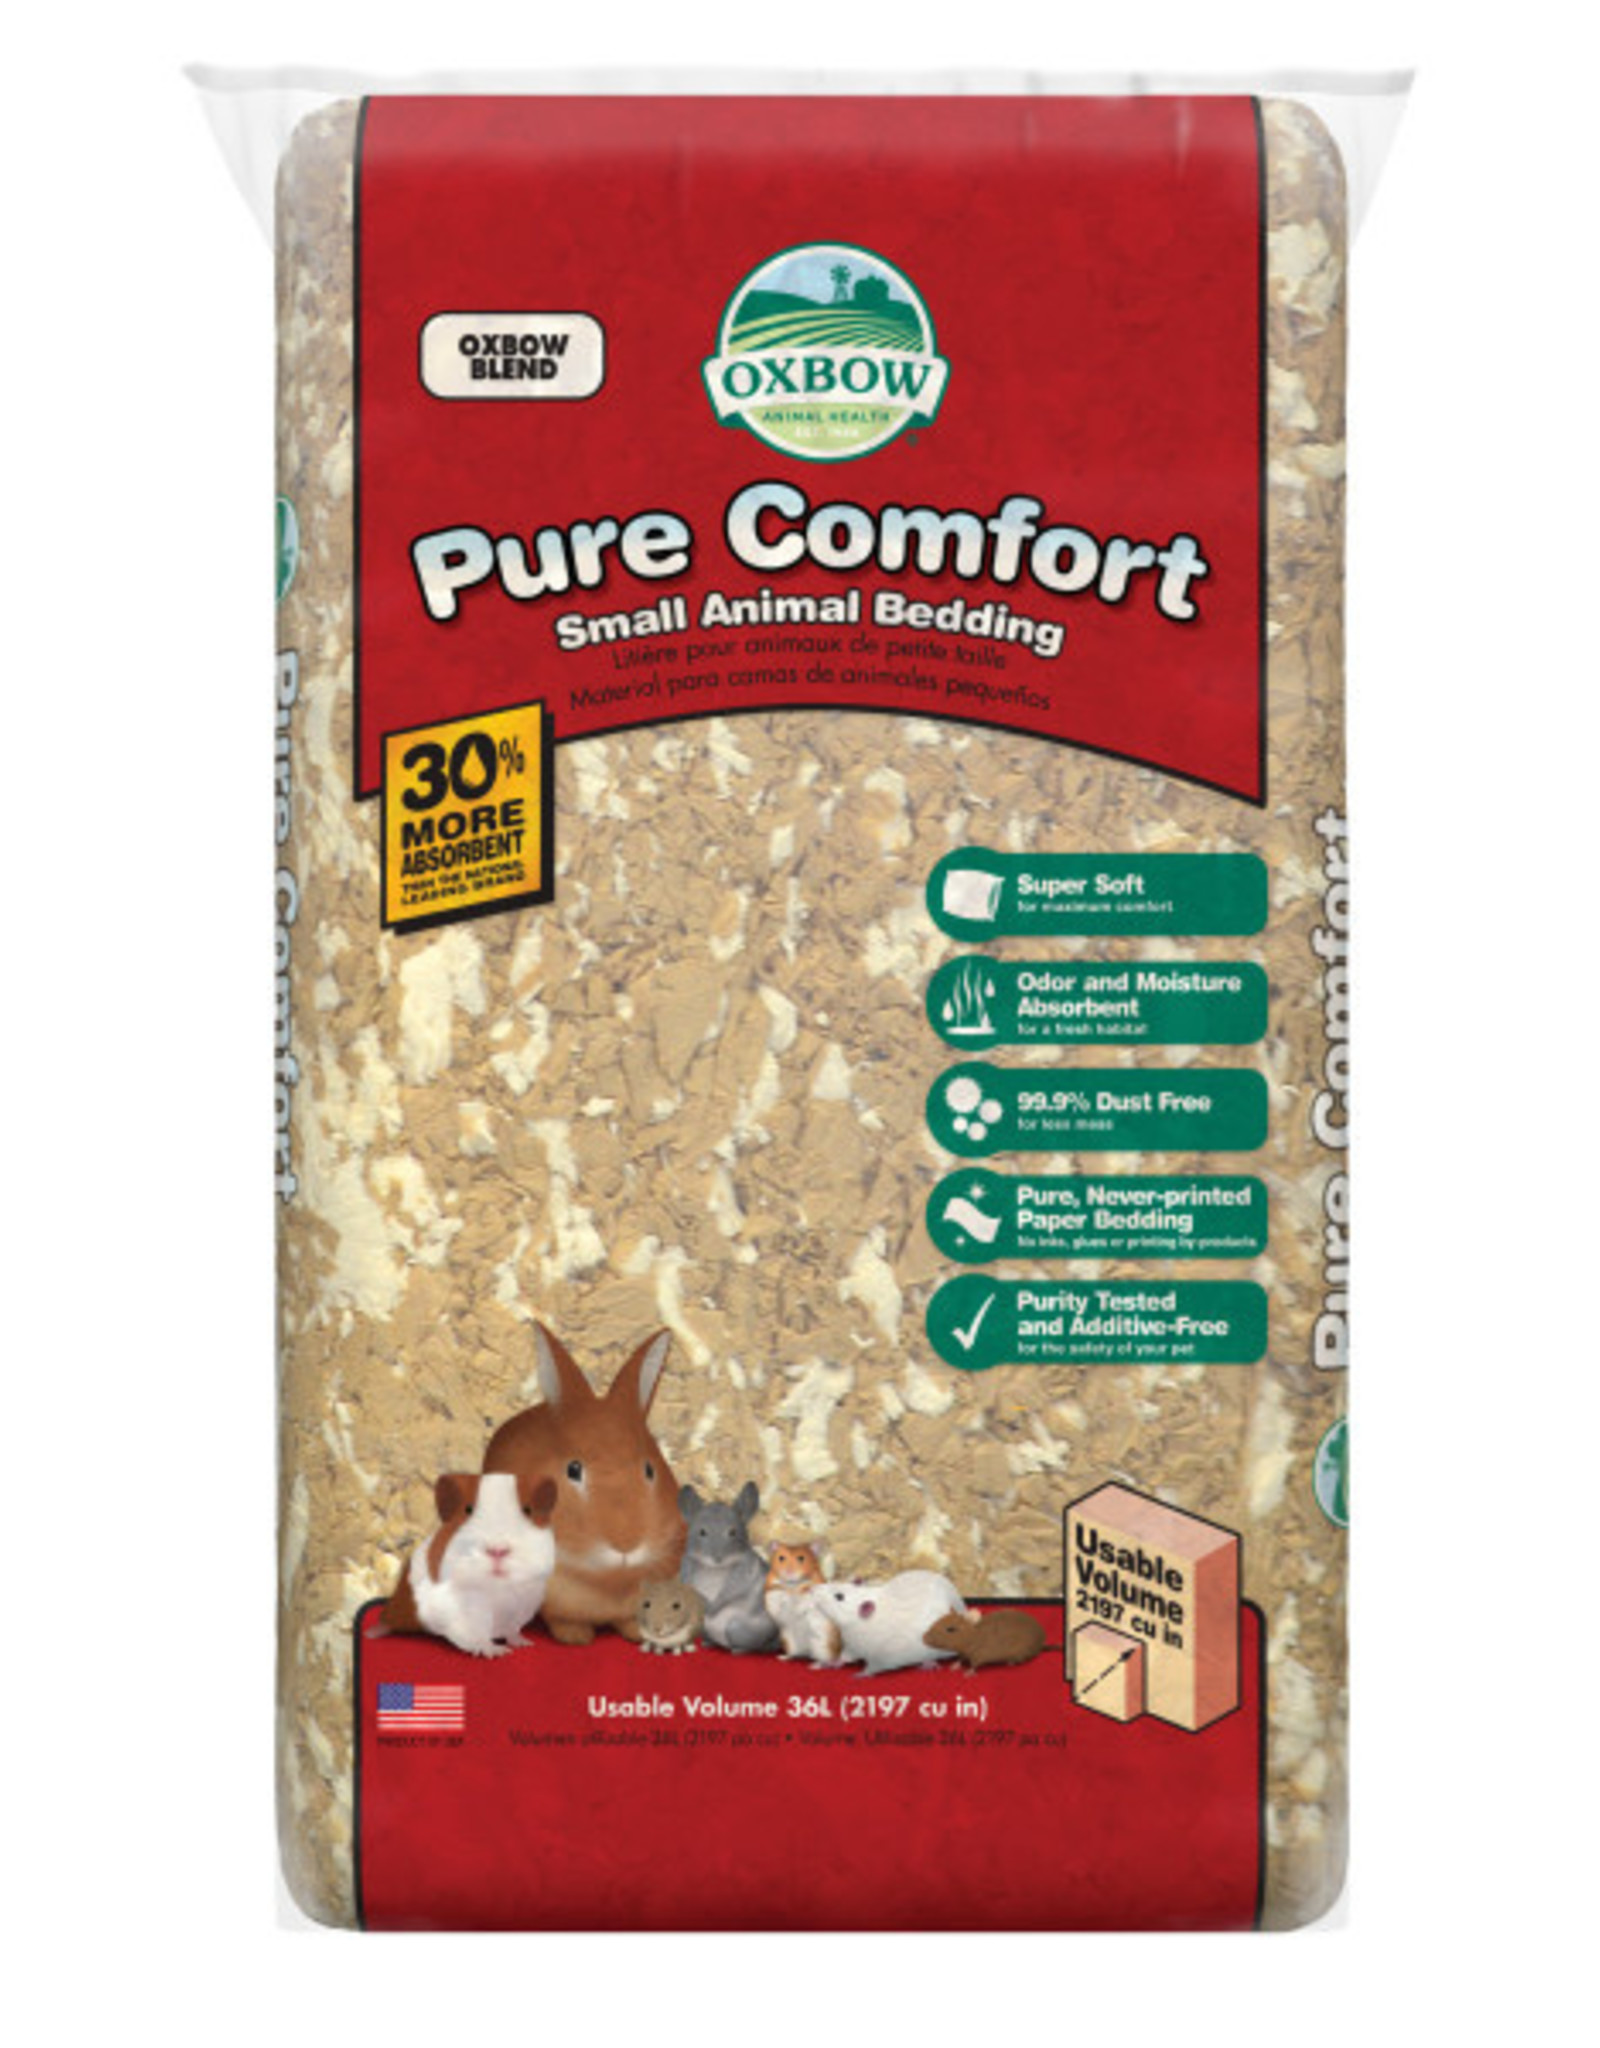 Oxbow Pure Comfort Oxbow Blend 36L